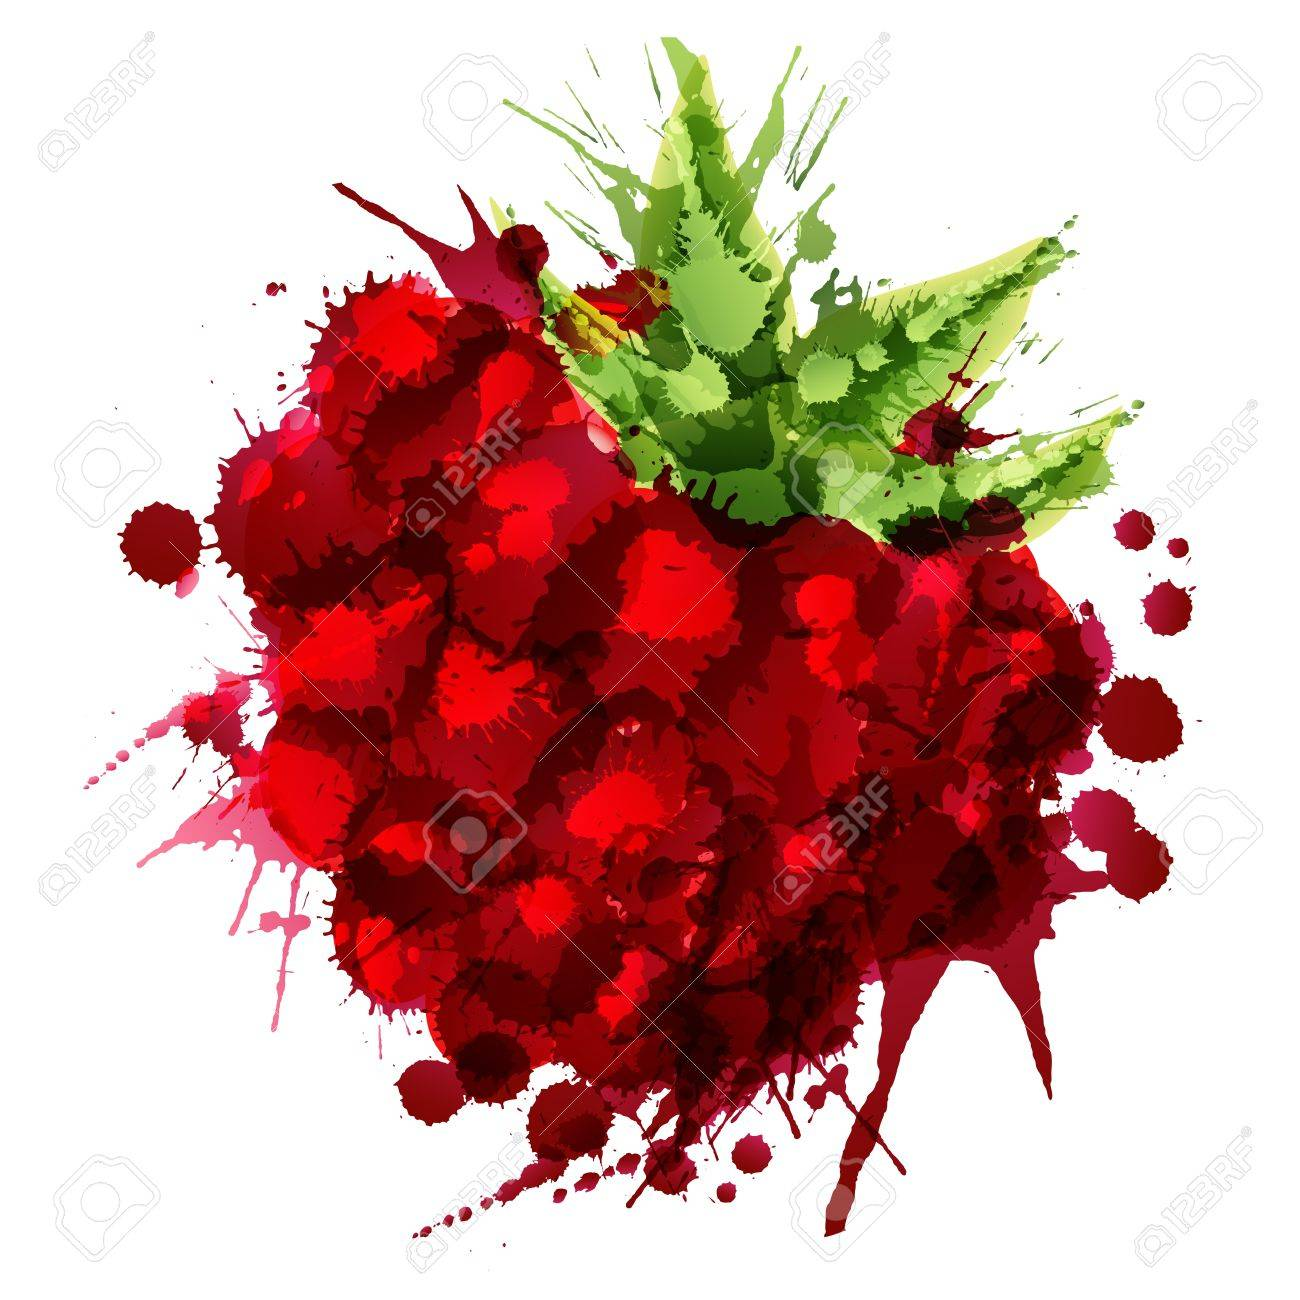 Raspberry made of colorful splashes on white background - 21149625